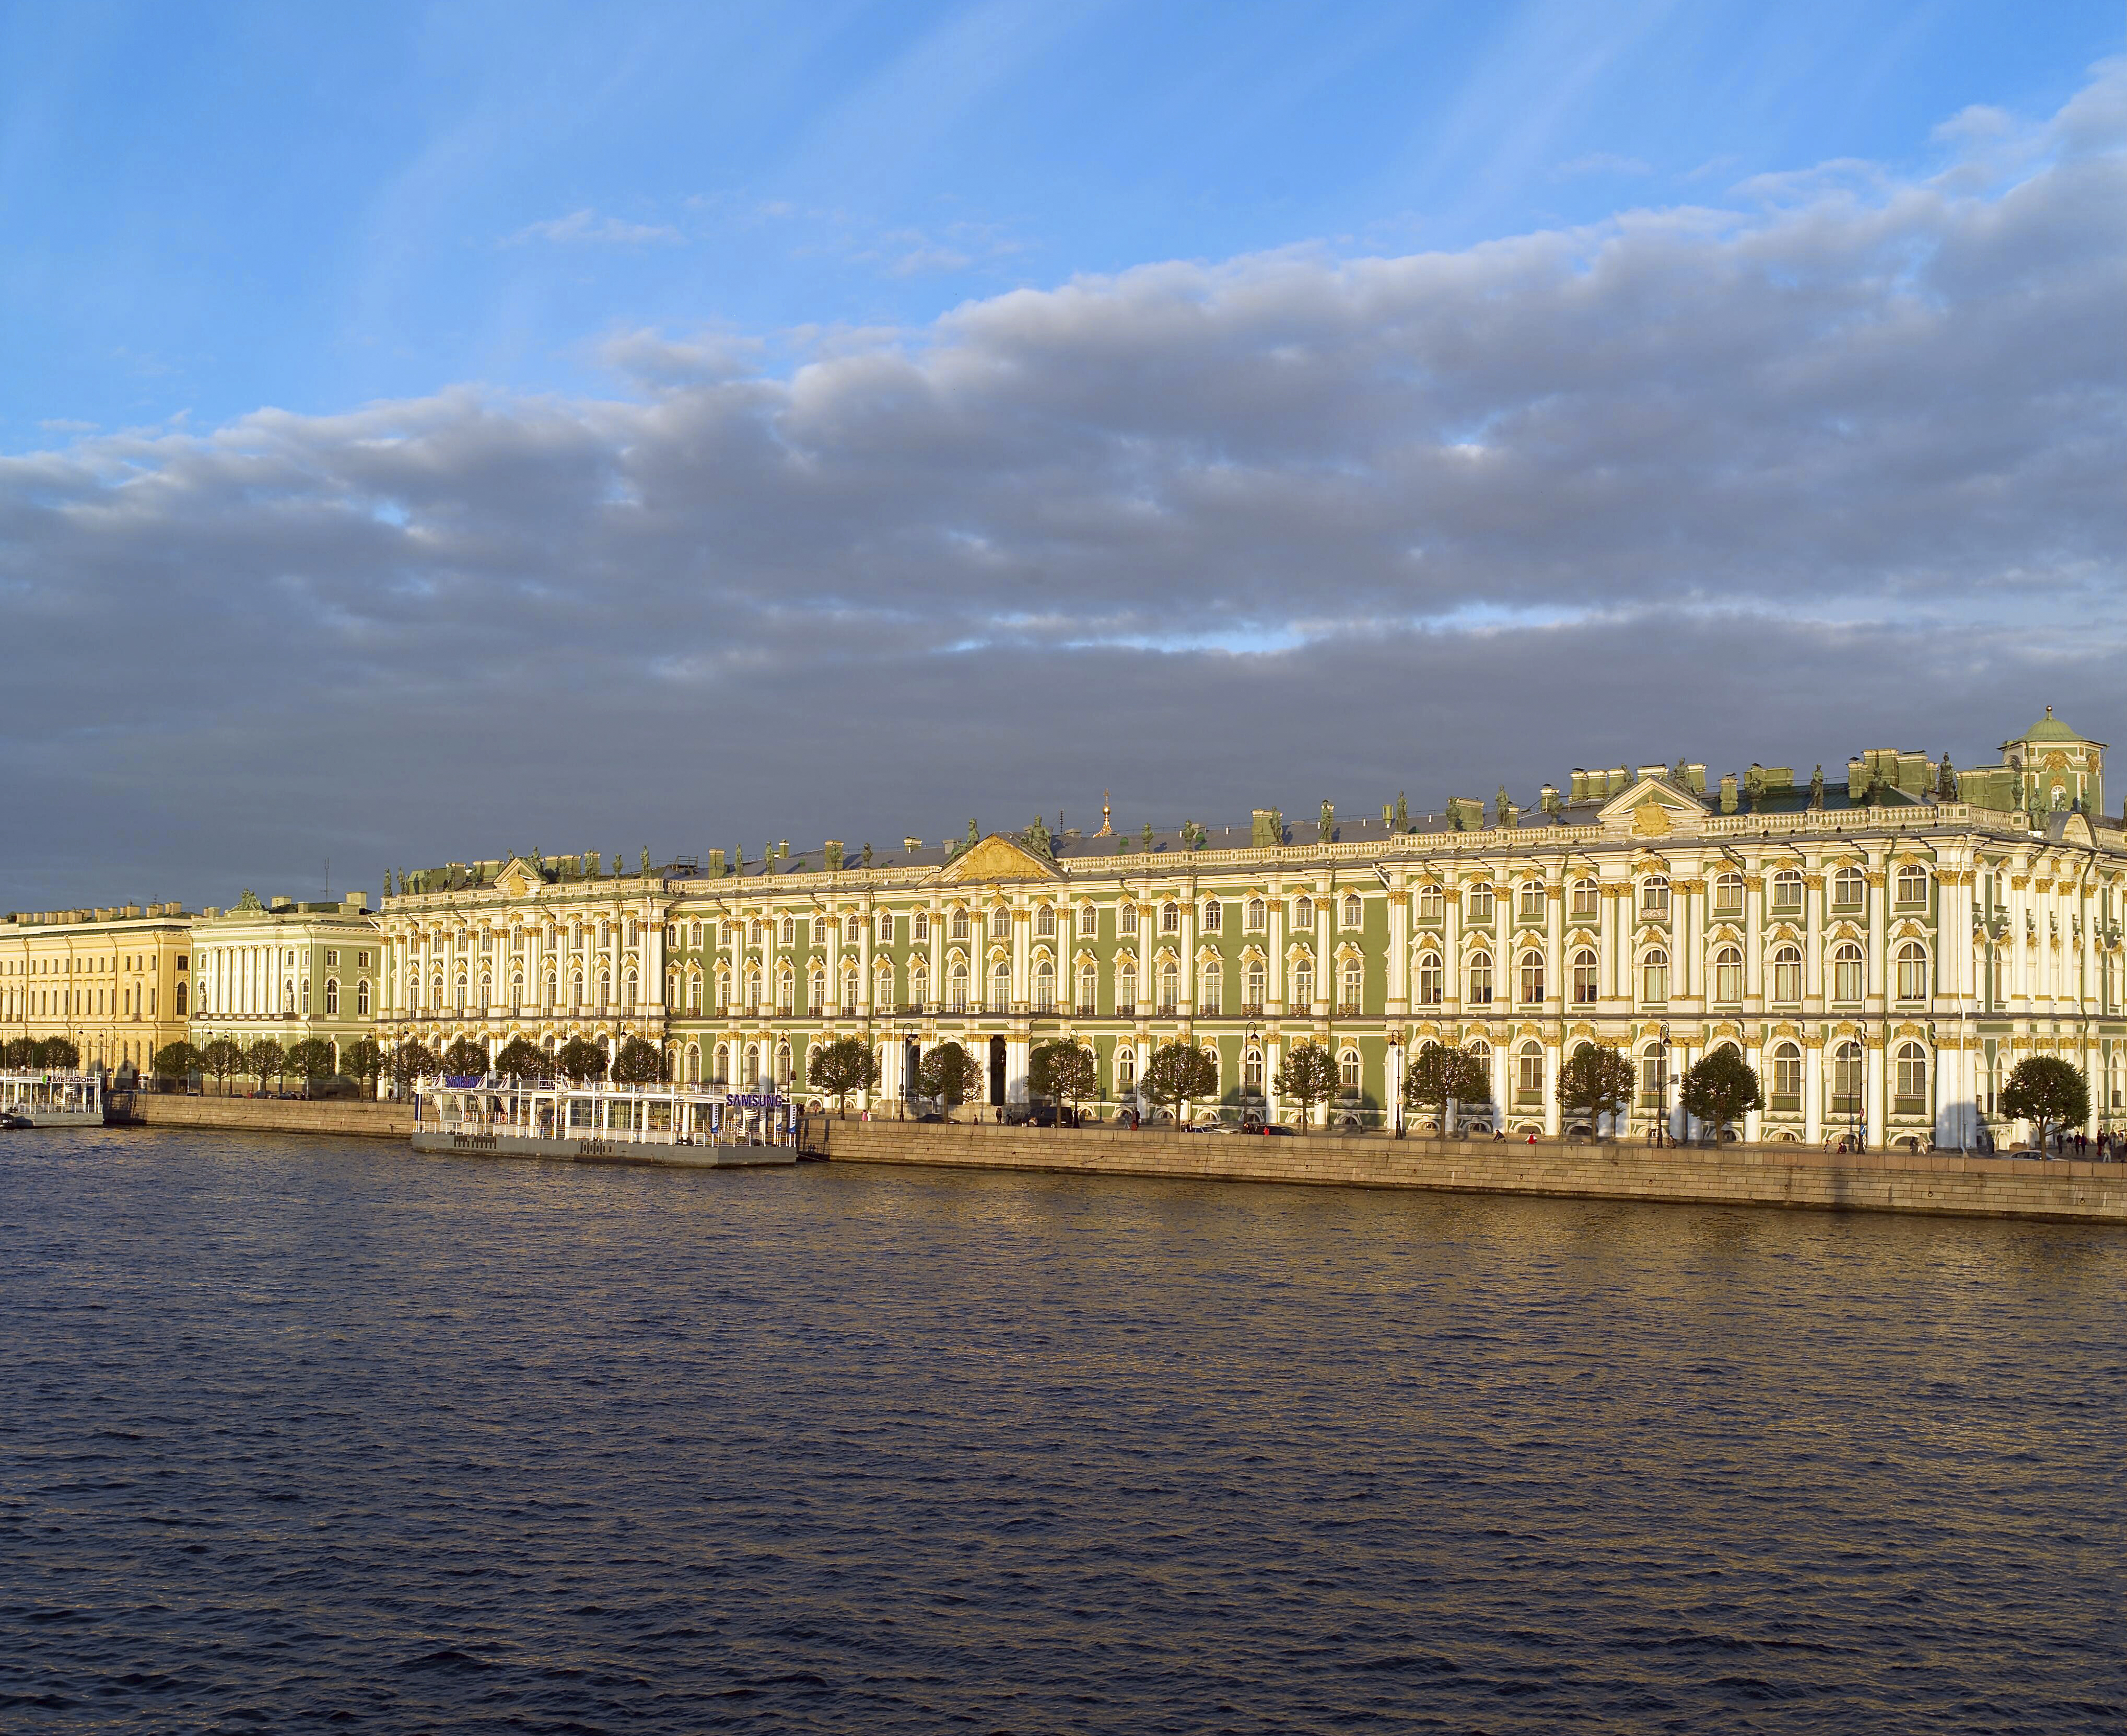 Art museums of Russia: list, description and interesting facts 7